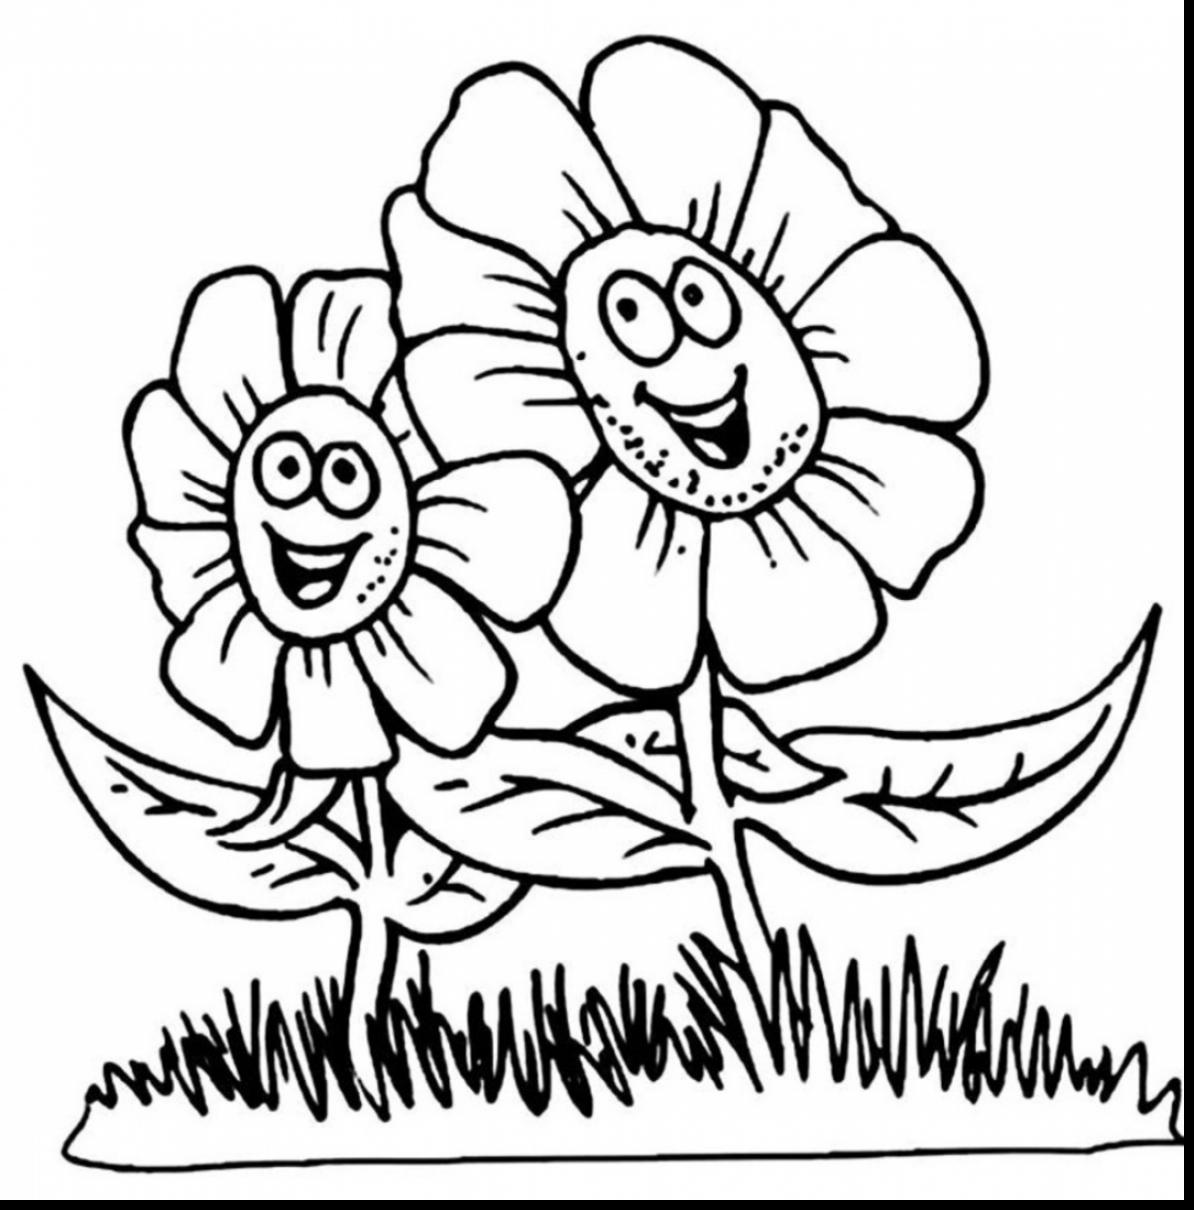 1194x1210 Good Indian Jasmine Flower Coloring Pages With Of Best